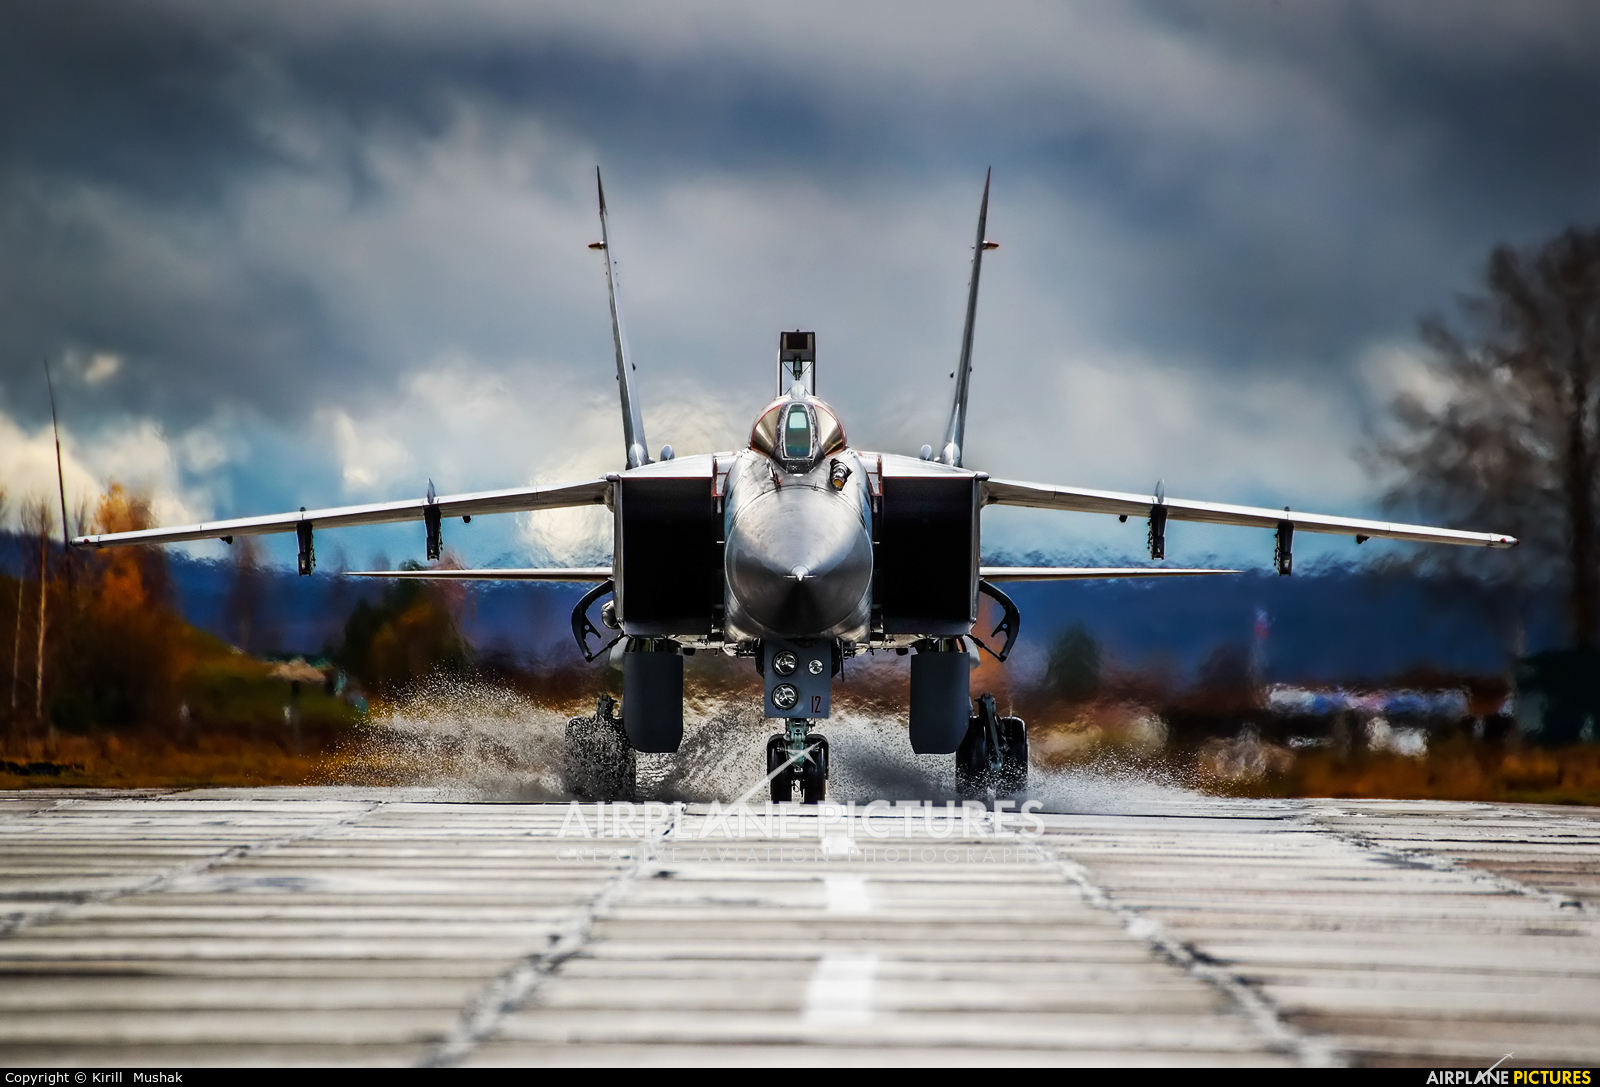 Mikoyan Gurevich Mig 31 All Models Photos Airplane Picturesnet